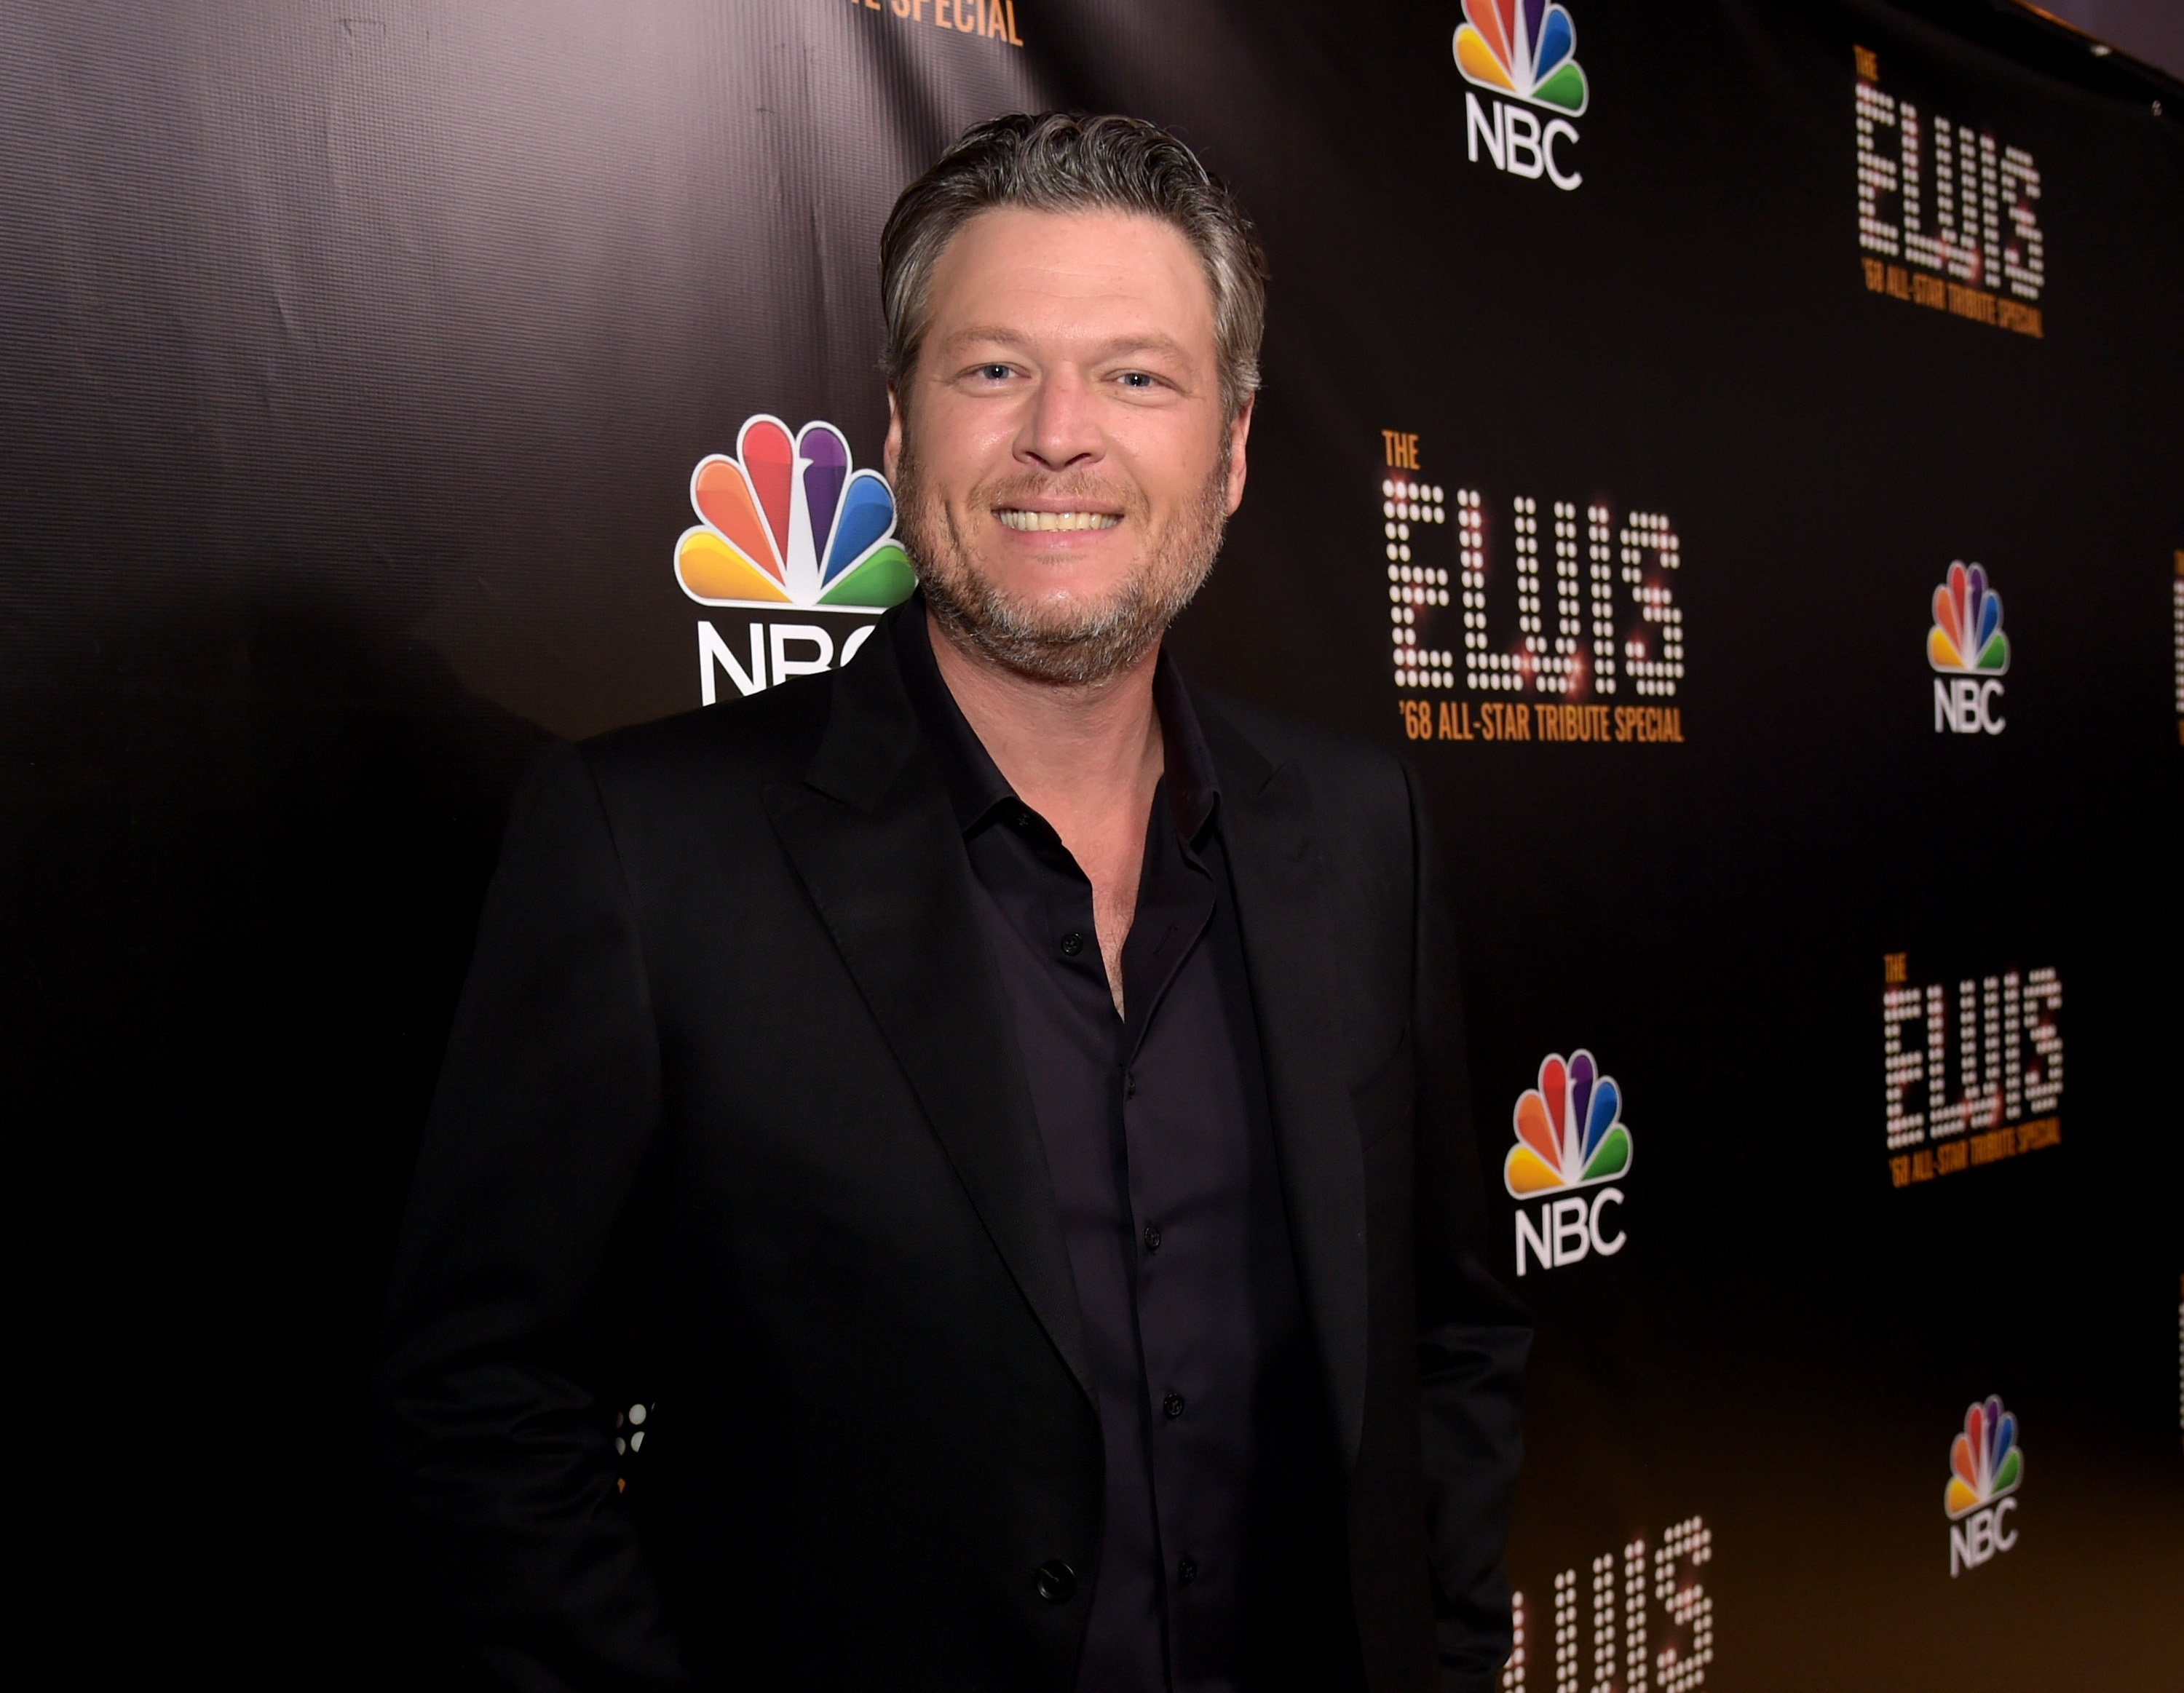 Blake Shelton attend The Elvis '68 All-Star Tribute Special on October 11, 2018, in Universal City, California. | Source: Getty Images.